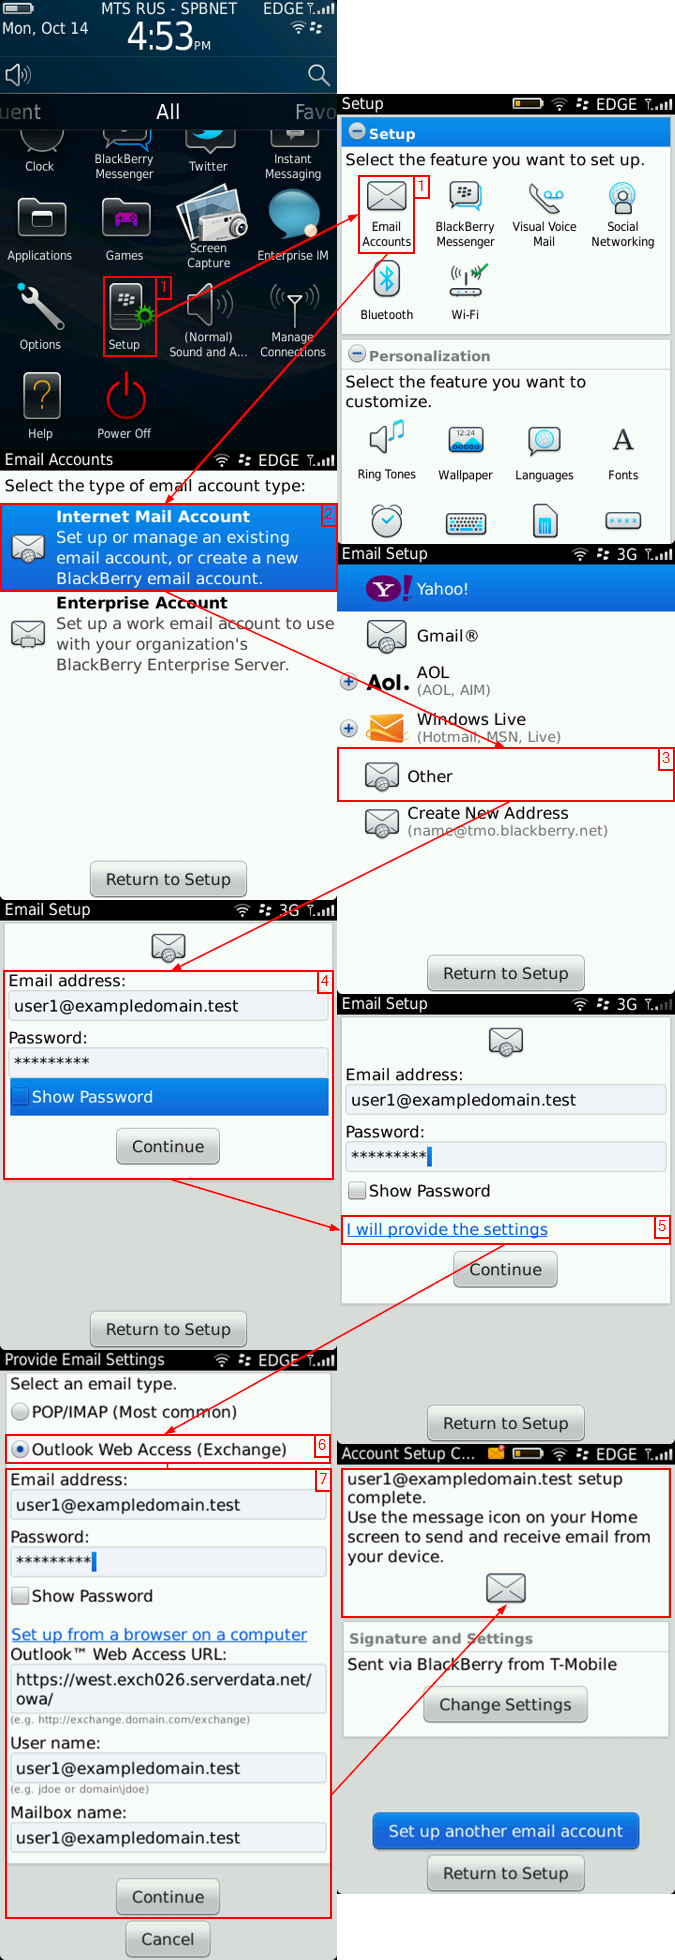 Integrate BIS Via IMAP